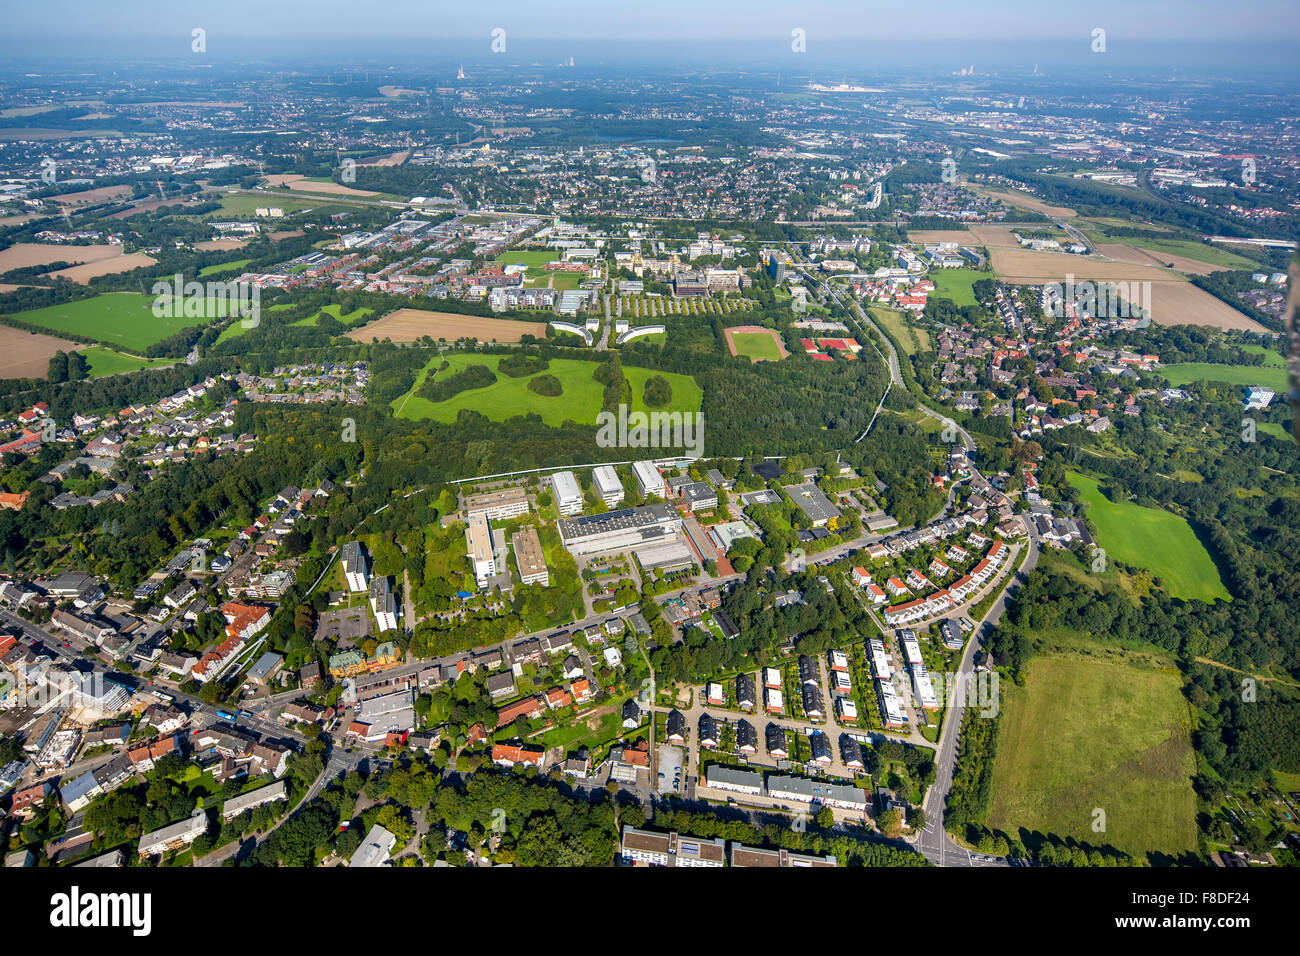 entire university in the foreground Campus South, University of Dortmund, Dortmund Campus,, Ruhr, Nordrhein-Westfalen, - Stock Image